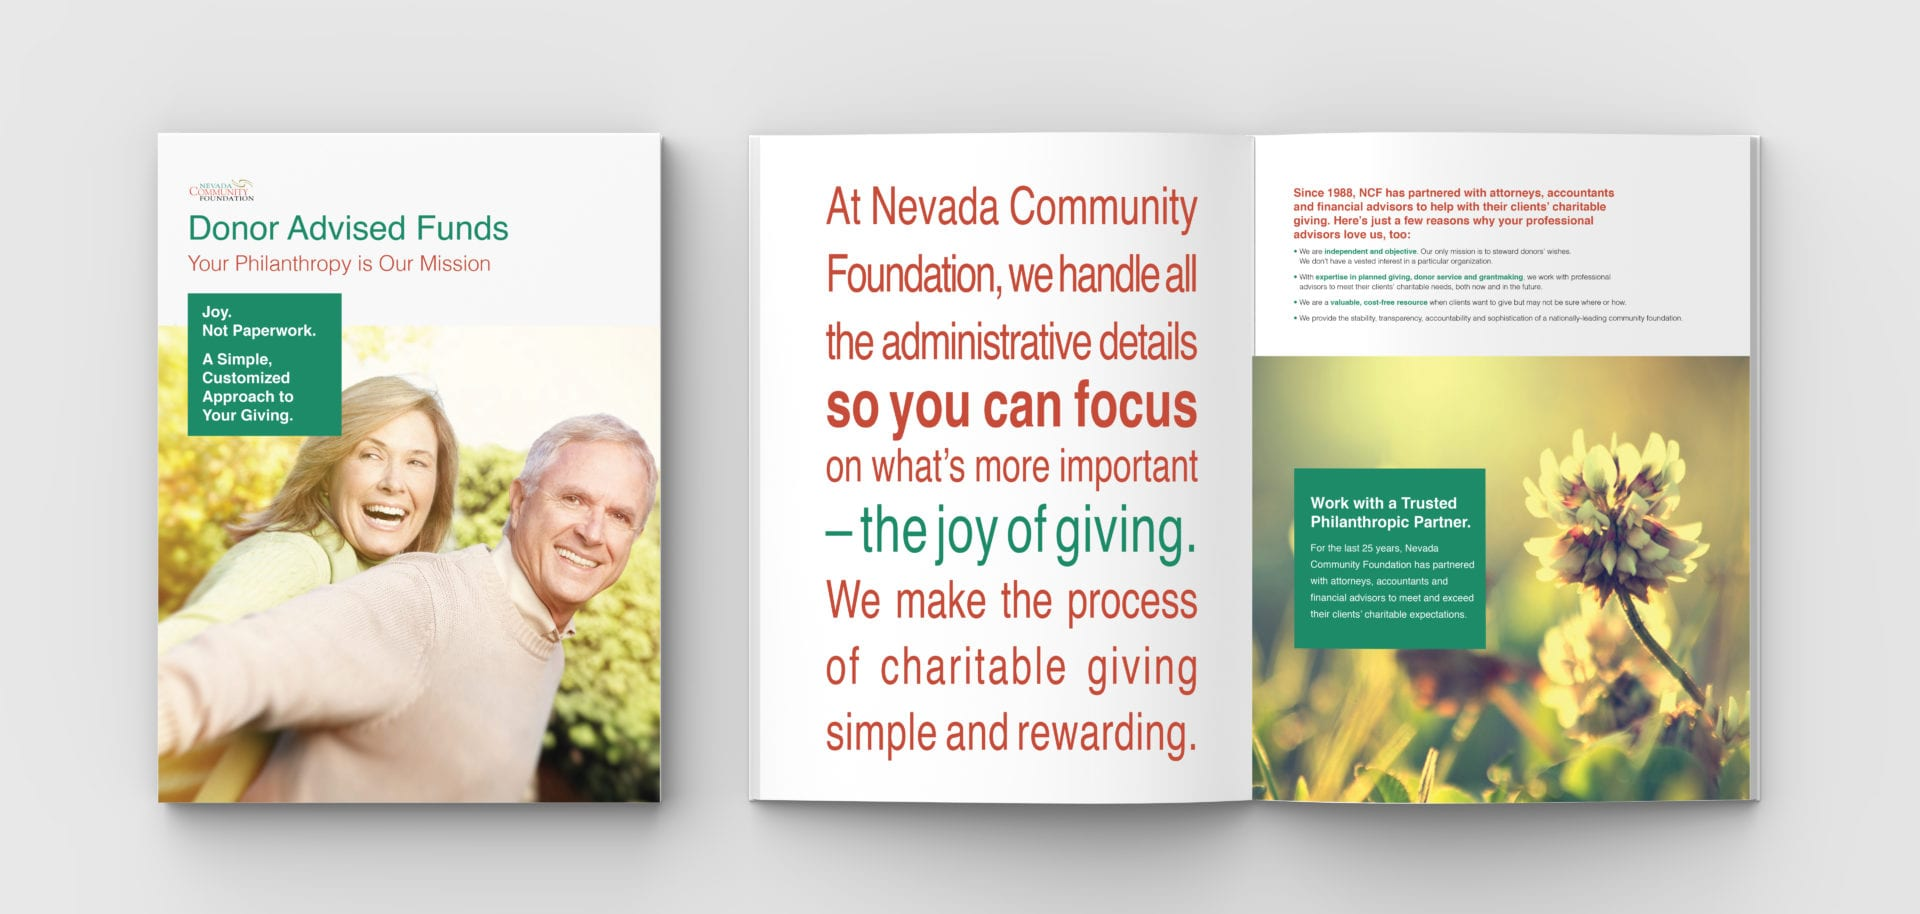 The brochure for the Nevada Community Foundation, opened